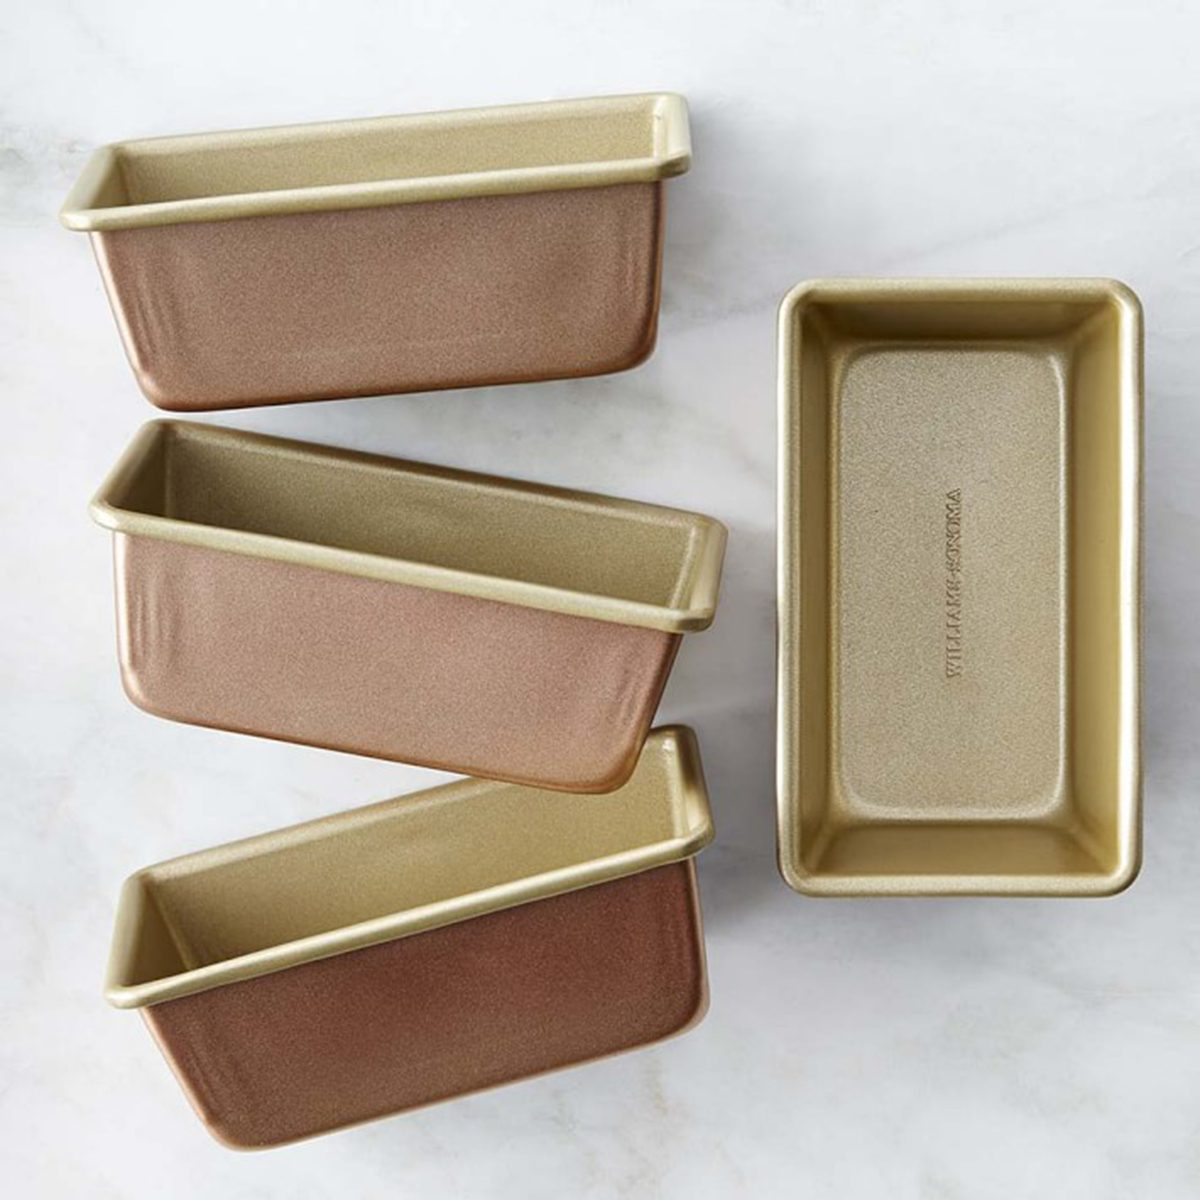 Williams Sonoma Copper Goldtouch® Nonstick Mini Loaf Pans, Set of 4